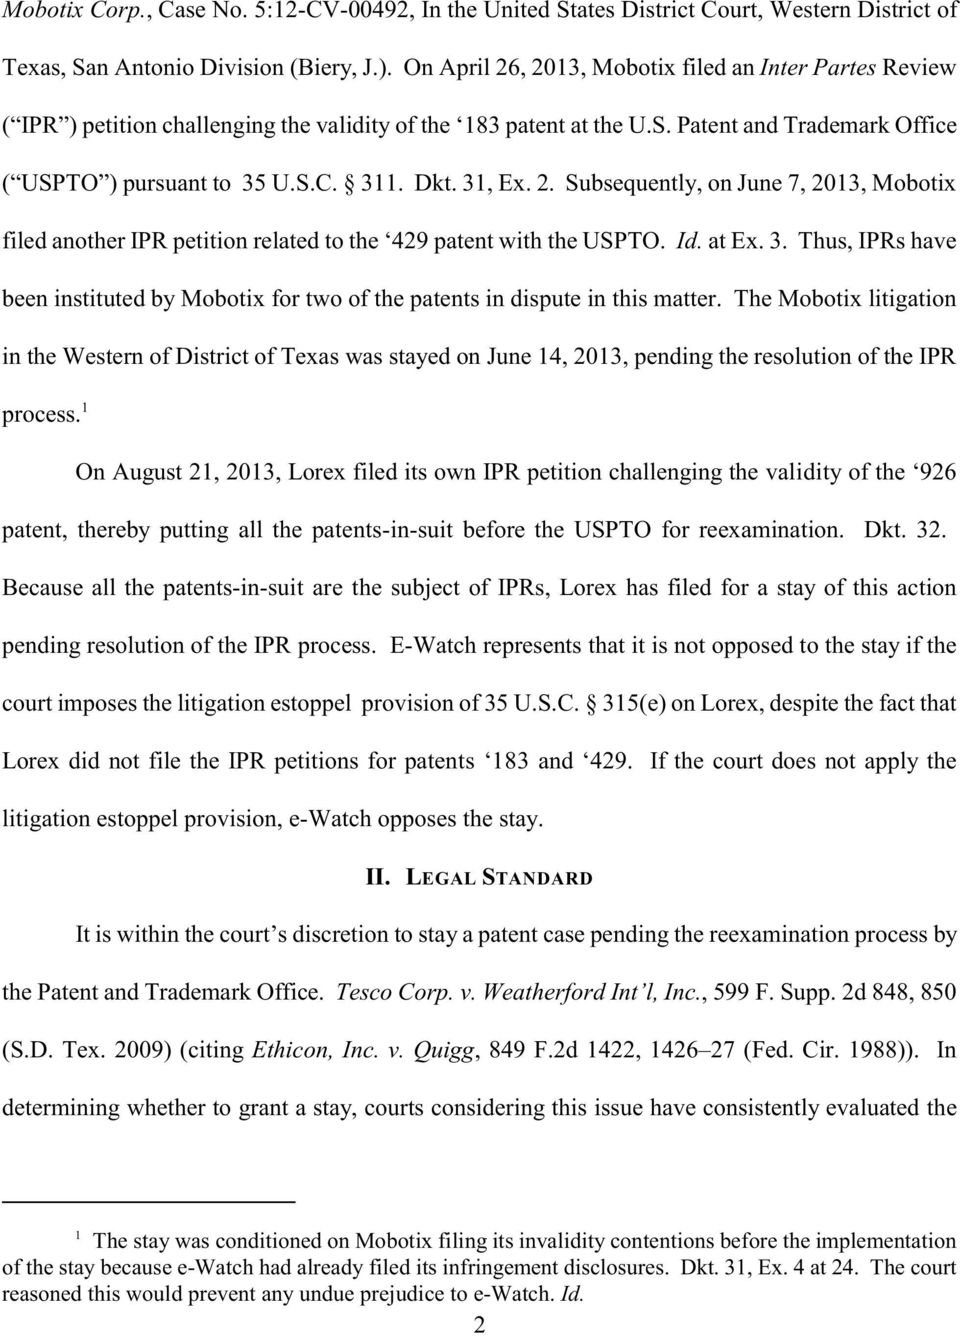 31, Ex. 2. Subsequently, on June 7, 2013, Mobotix filed another IPR petition related to the 429 patent with the USPTO. Id. at Ex. 3.